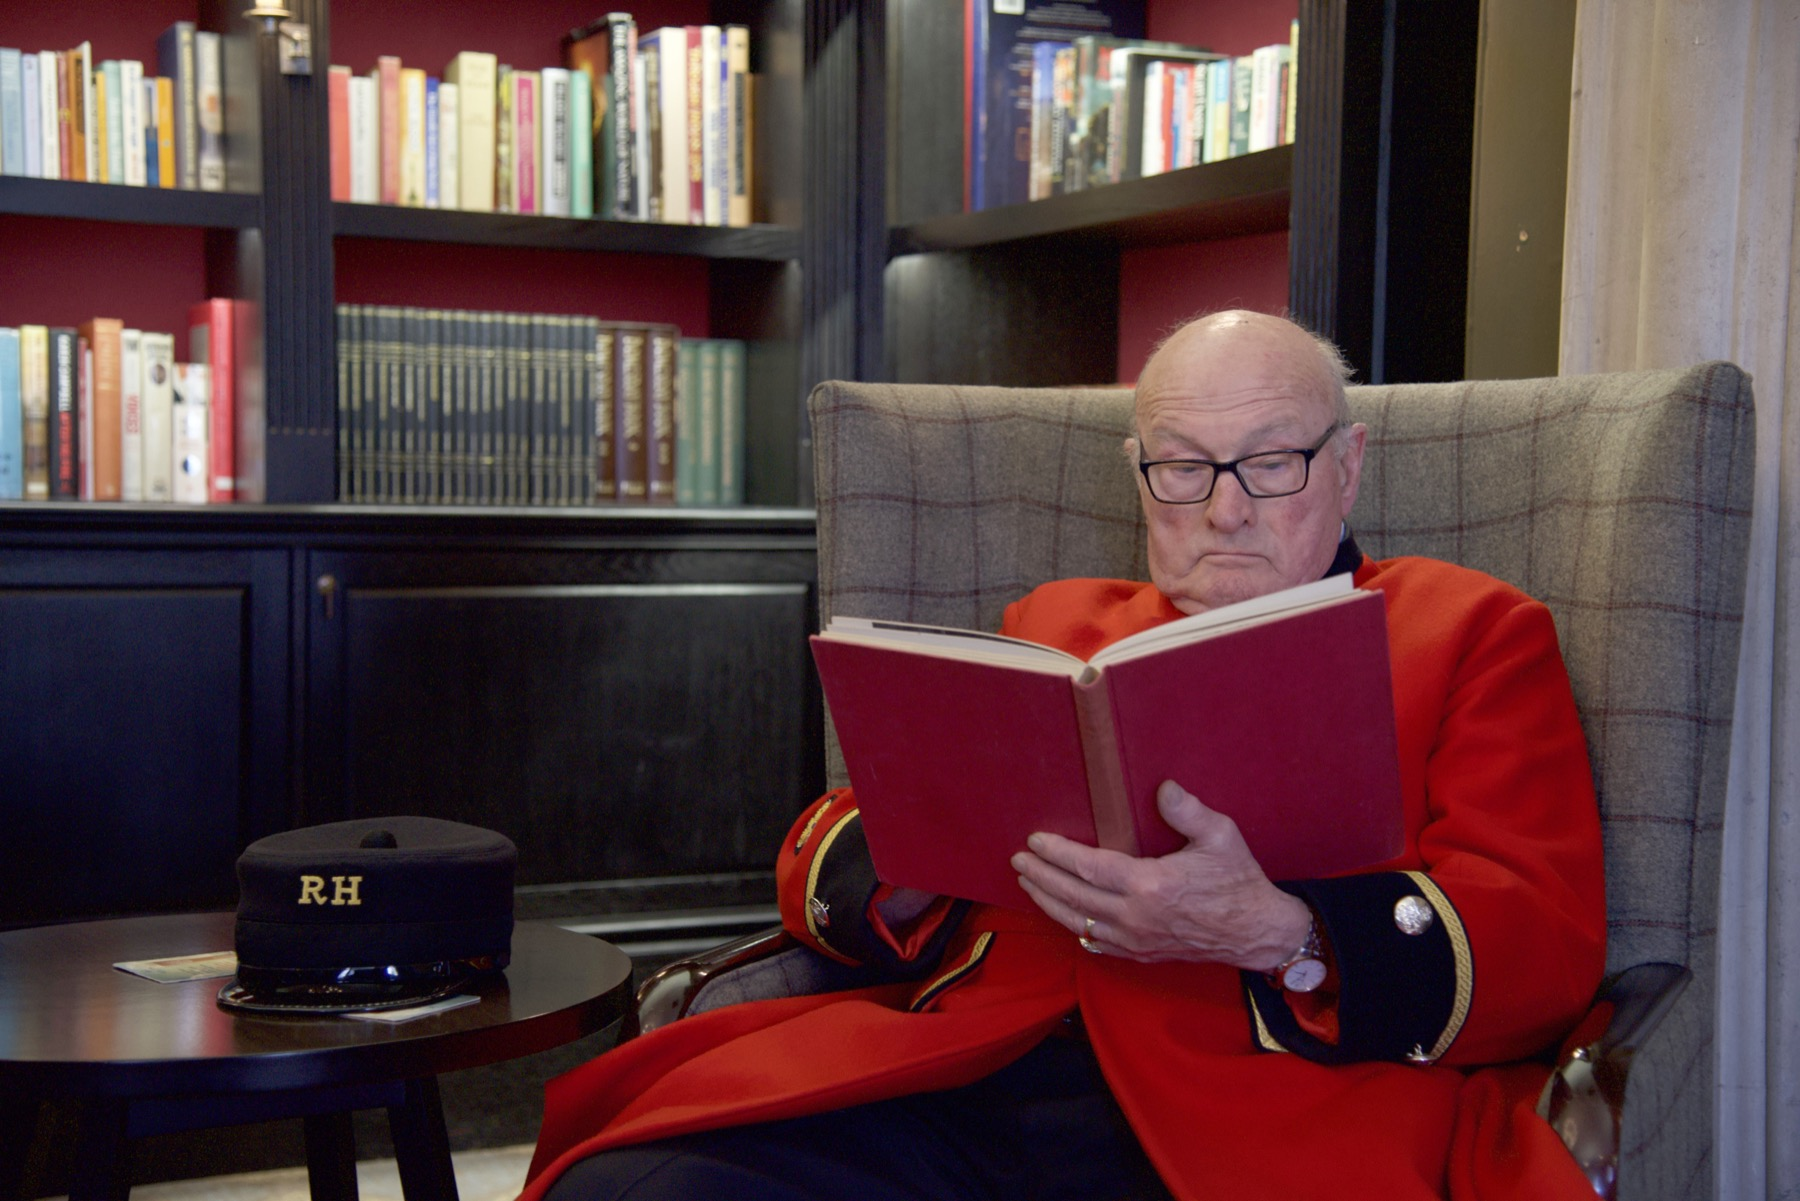 Colin Thackery - Chelsea Pensioner